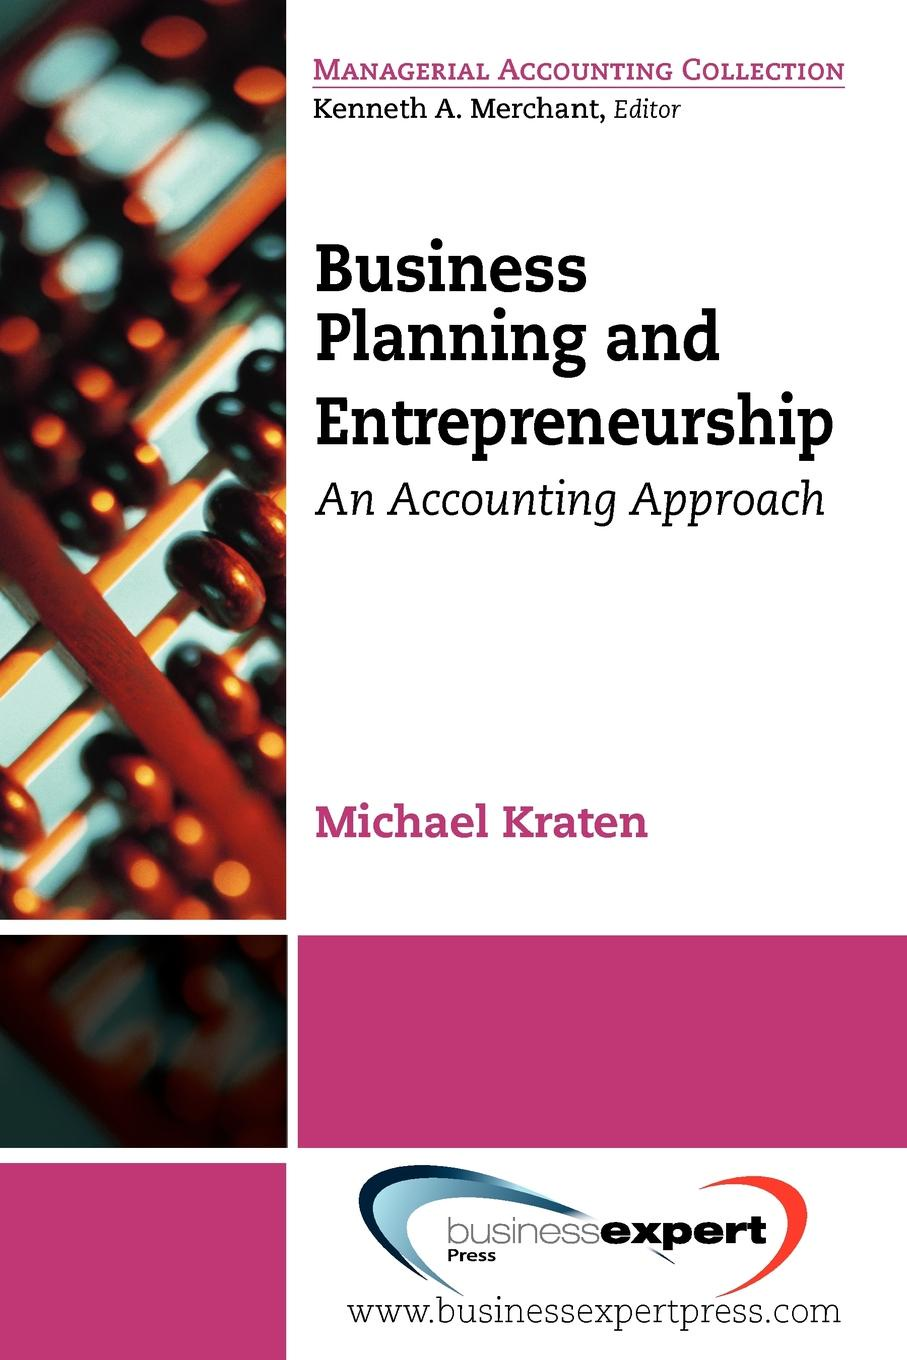 Kraten Michael Kraten, Michael Kraten Business Planning and Entrepreneurship christopher culp l the risk management process business strategy and tactics